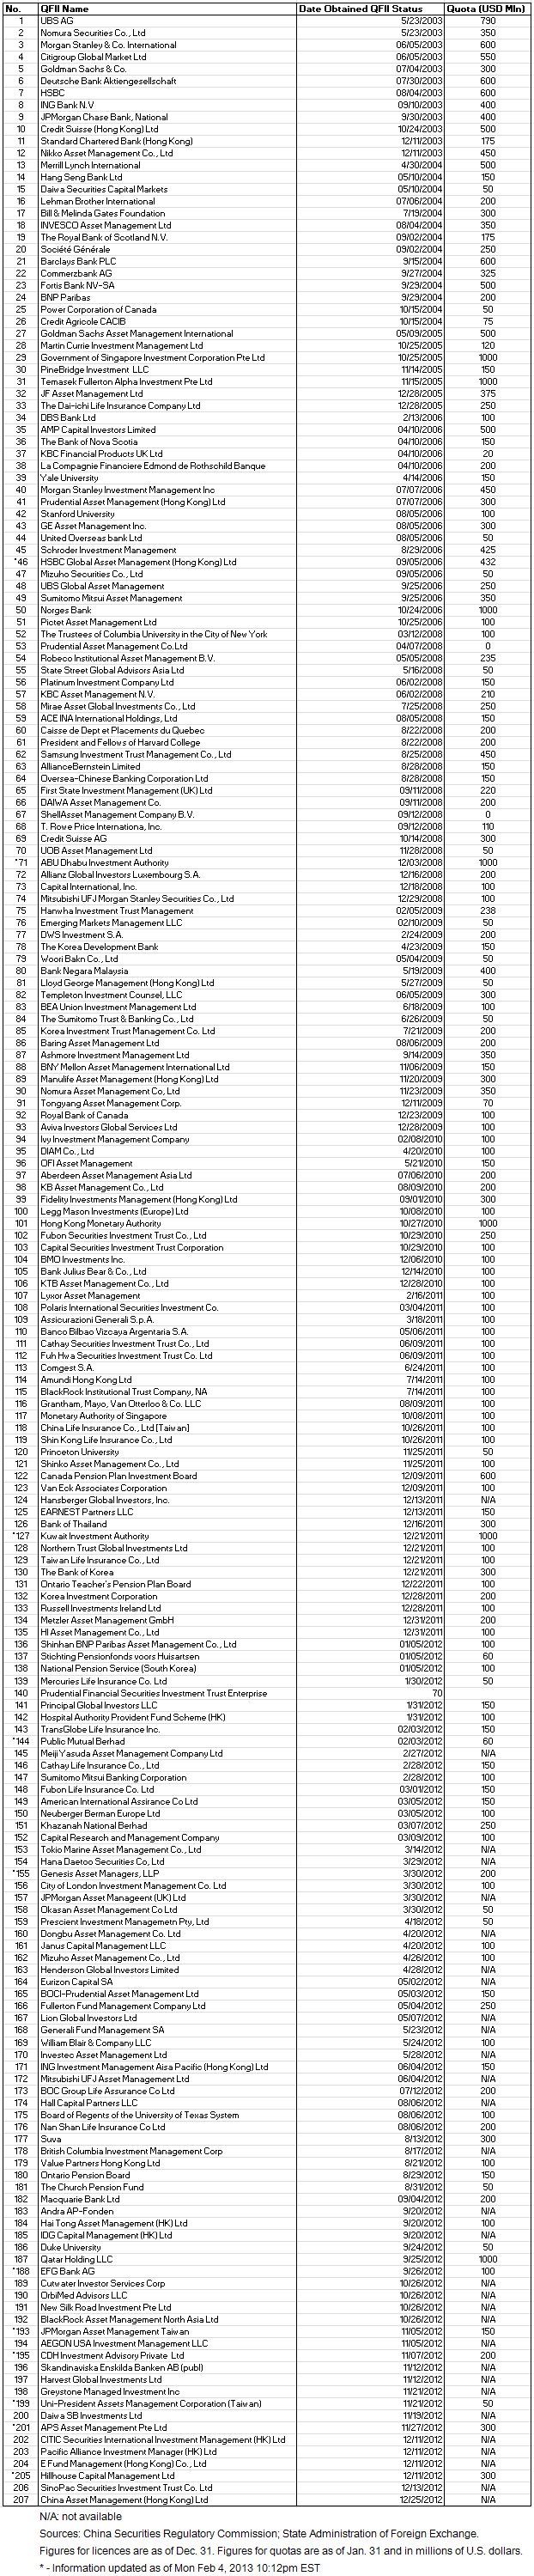 China QFII Table